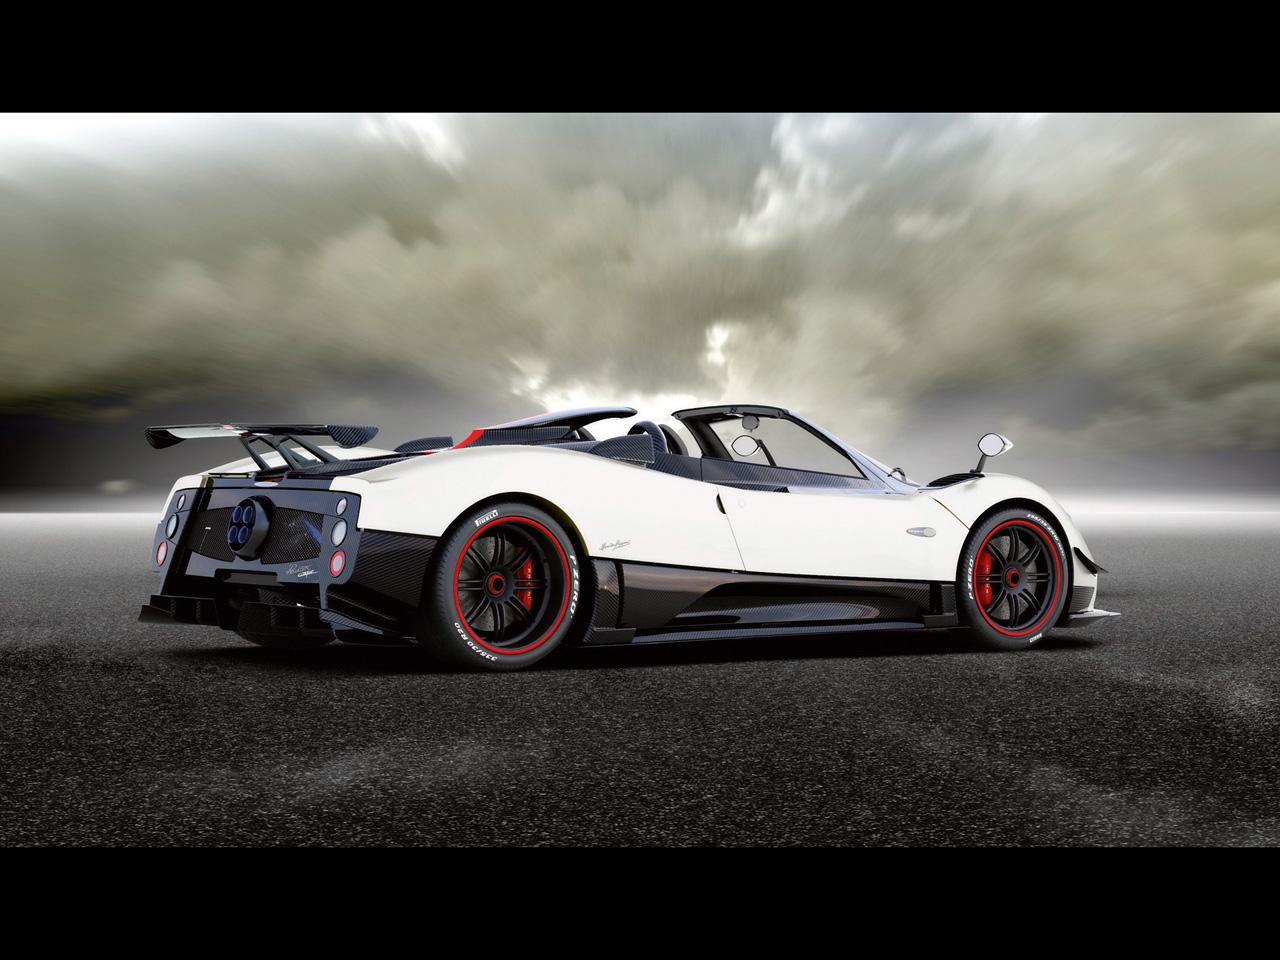 2009 Pagani Zonda Cinque Roadster Wallpapers By Cars Wallpapers Net